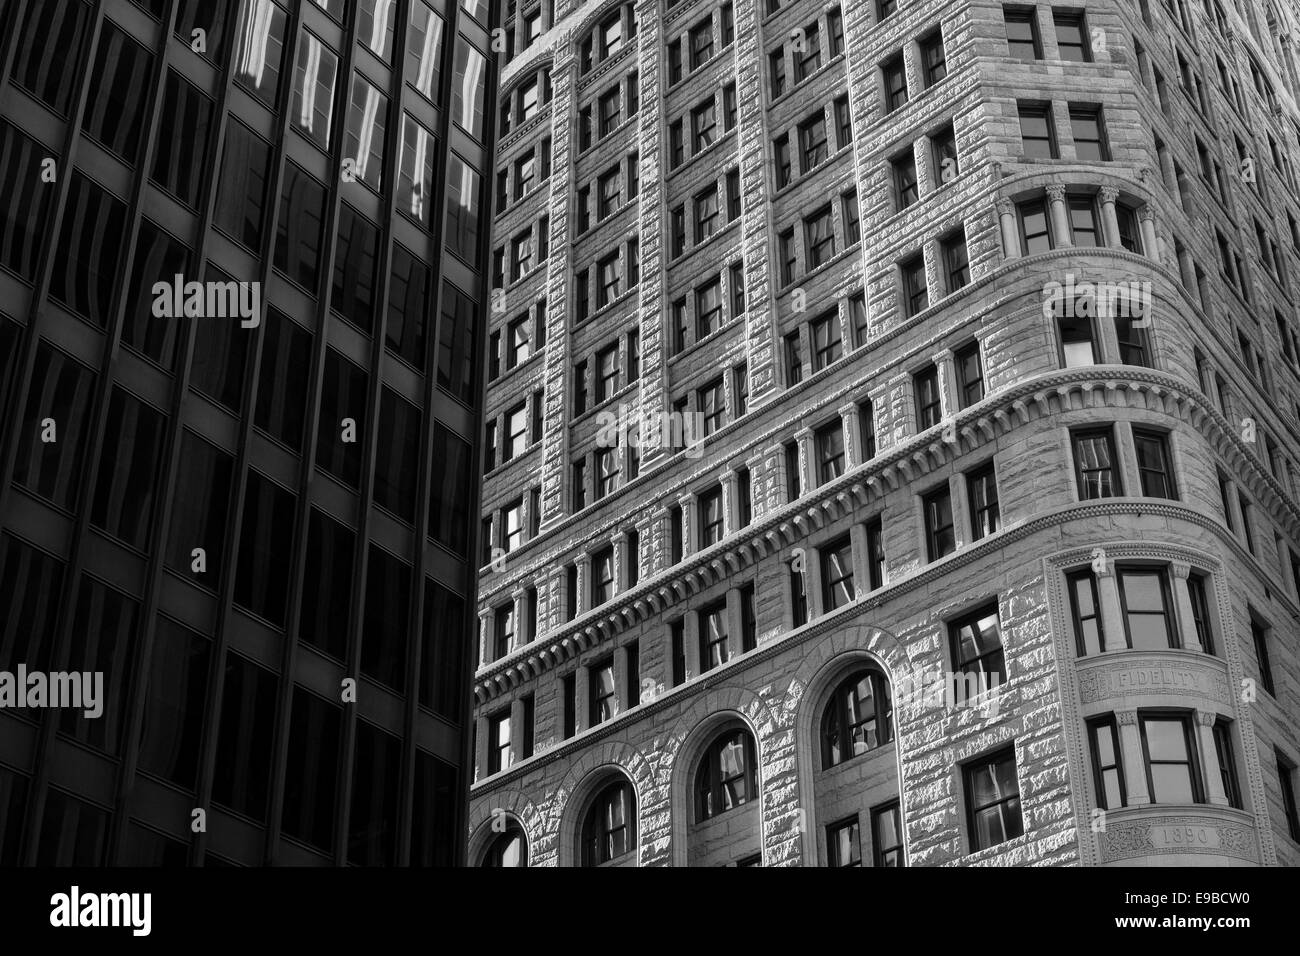 Old and modern buildings juxtaposed on a street in the business district of Baltimore. - Stock Image